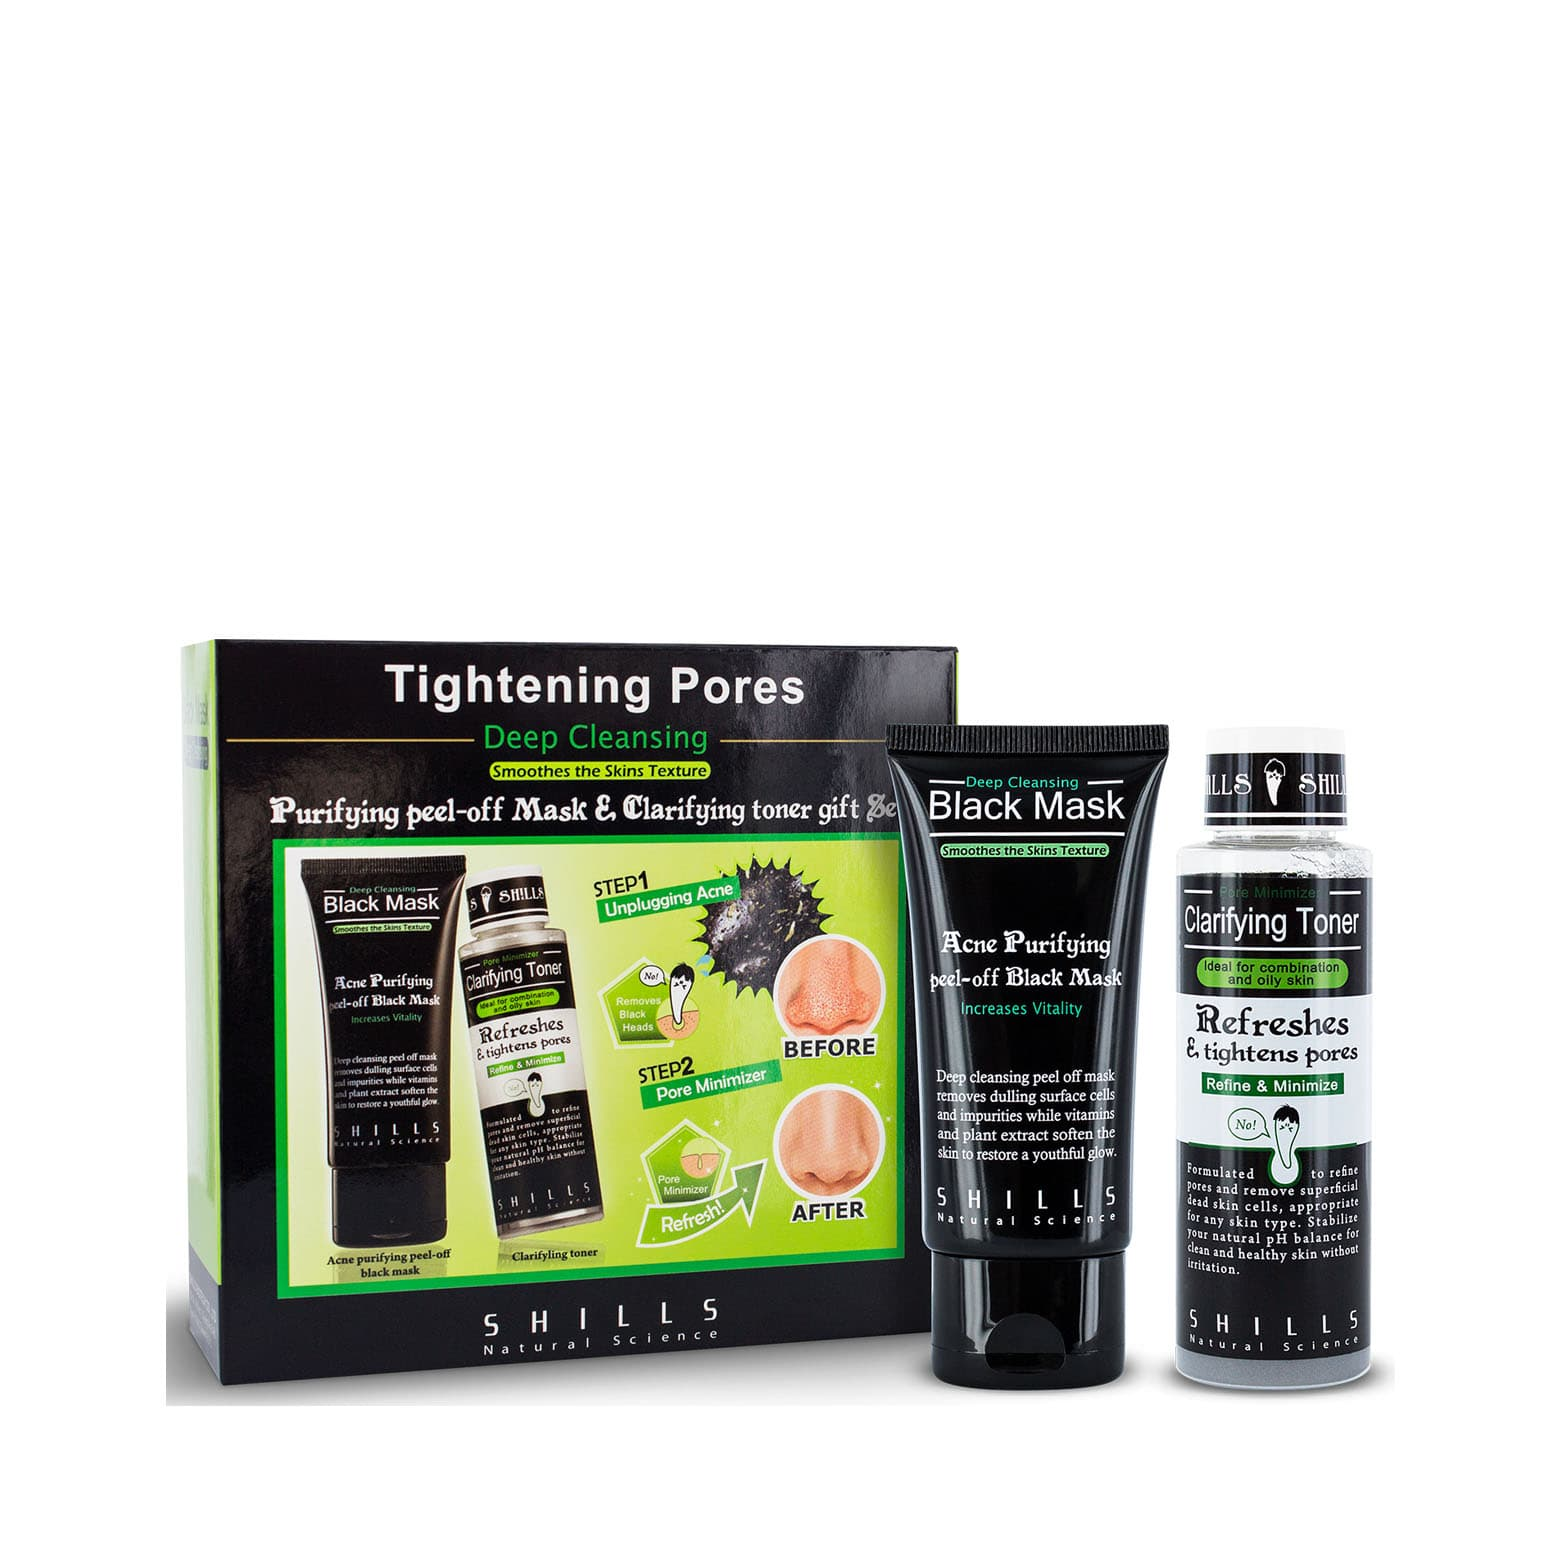 Purifying Peel-off Mask & Clarifying Toner Gift Set